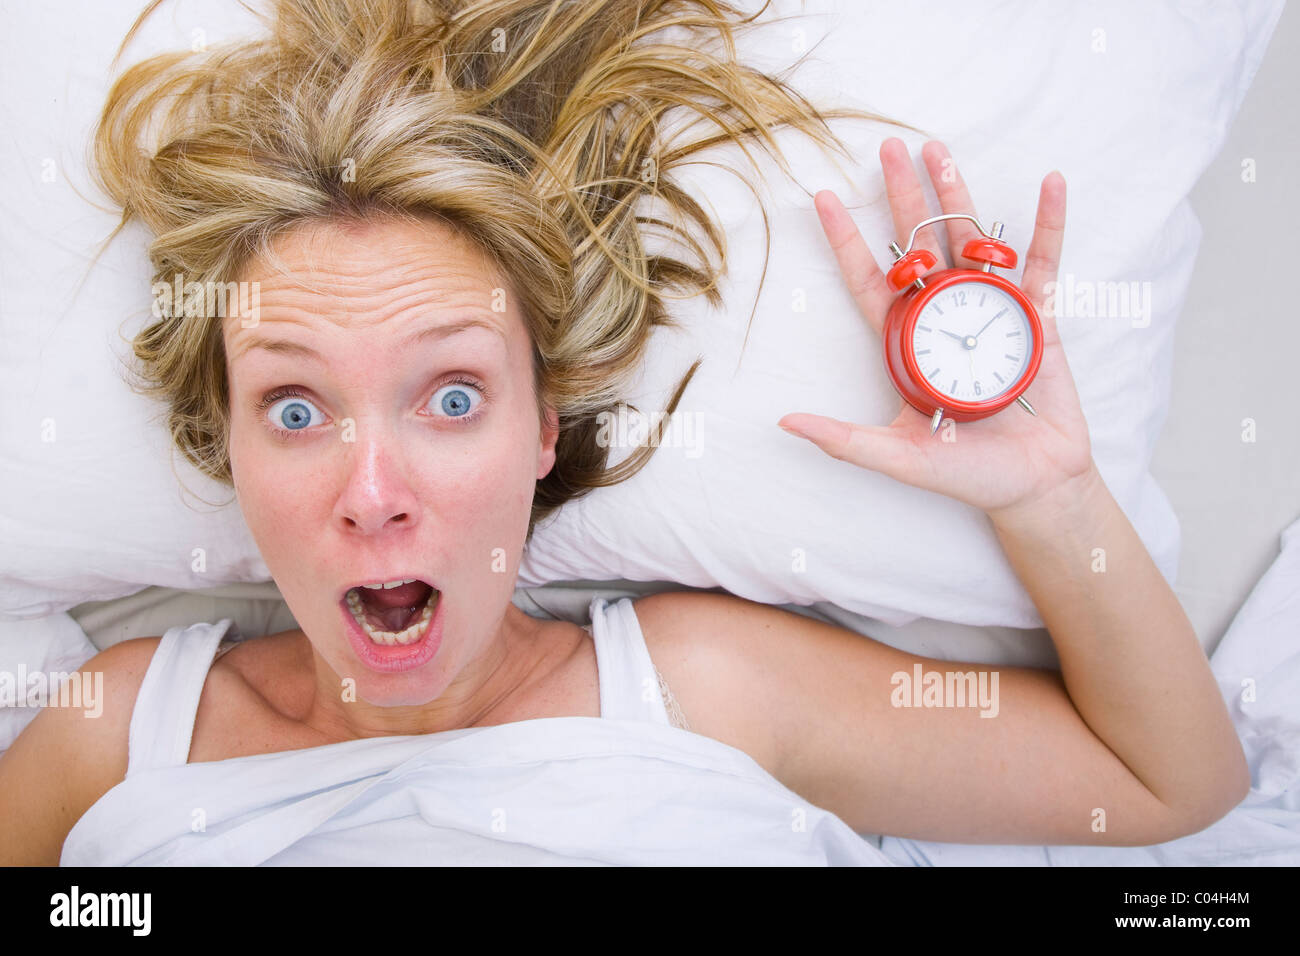 Woman in bed realizing that she has slept in despite having an alarm clock - Stock Image